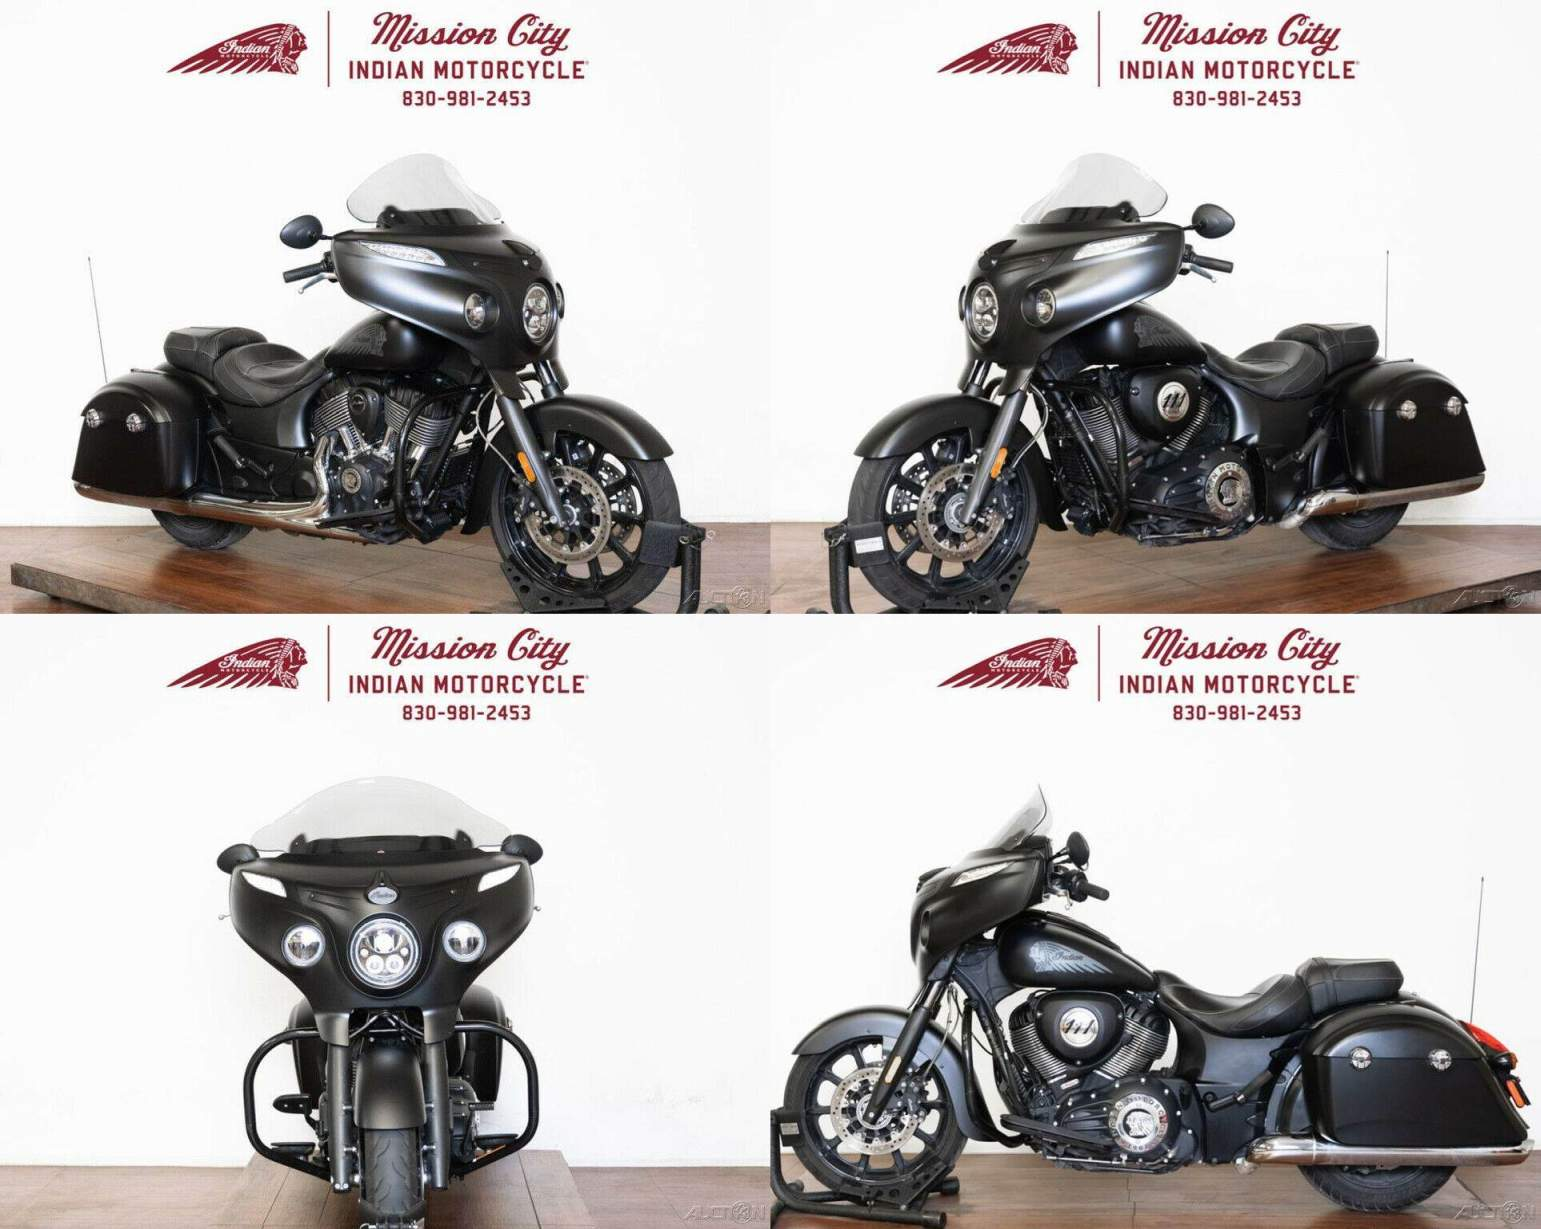 2018 Indian Chieftain Dark Horse ABS Thunder Black Smoke Thunder Black Smoke used for sale near me